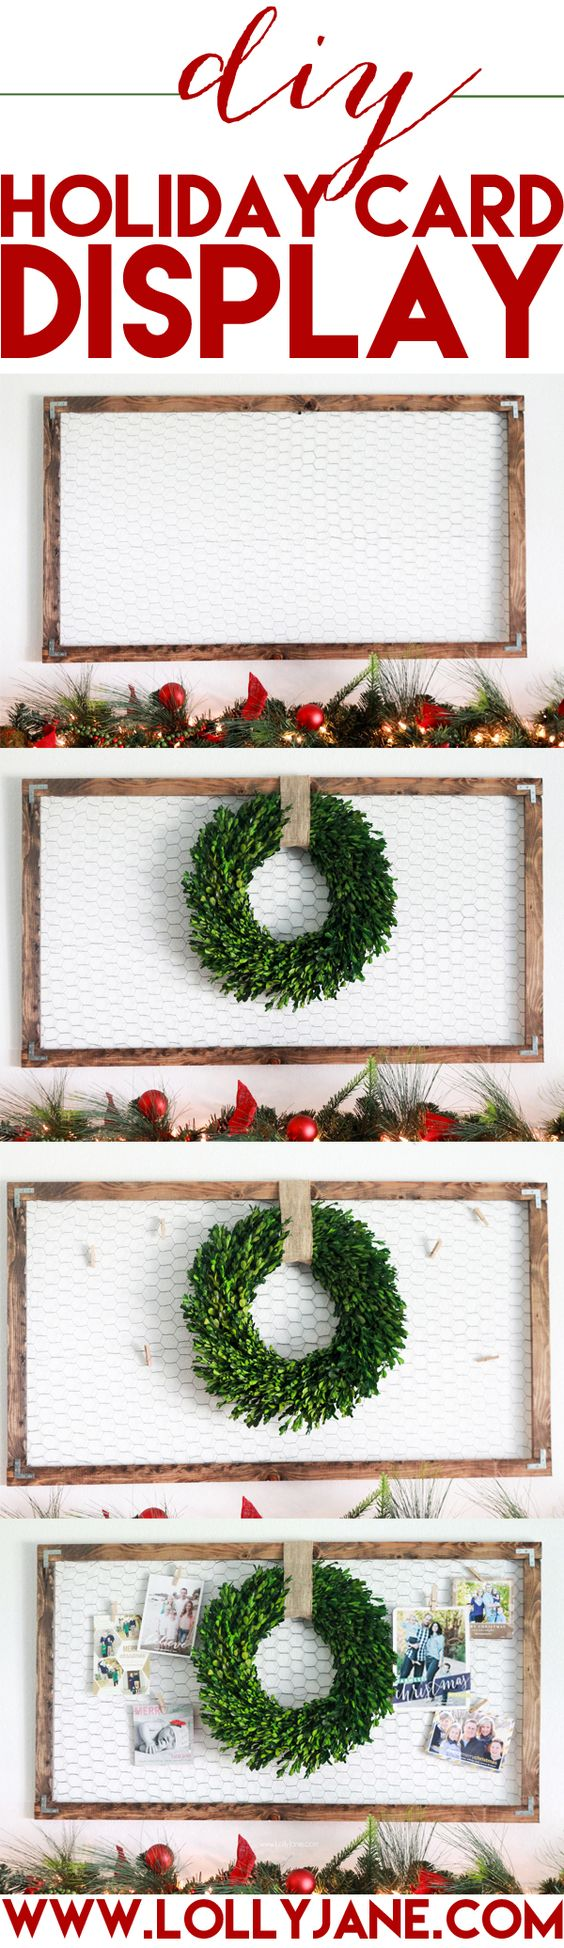 Rustic Holiday Card Display.